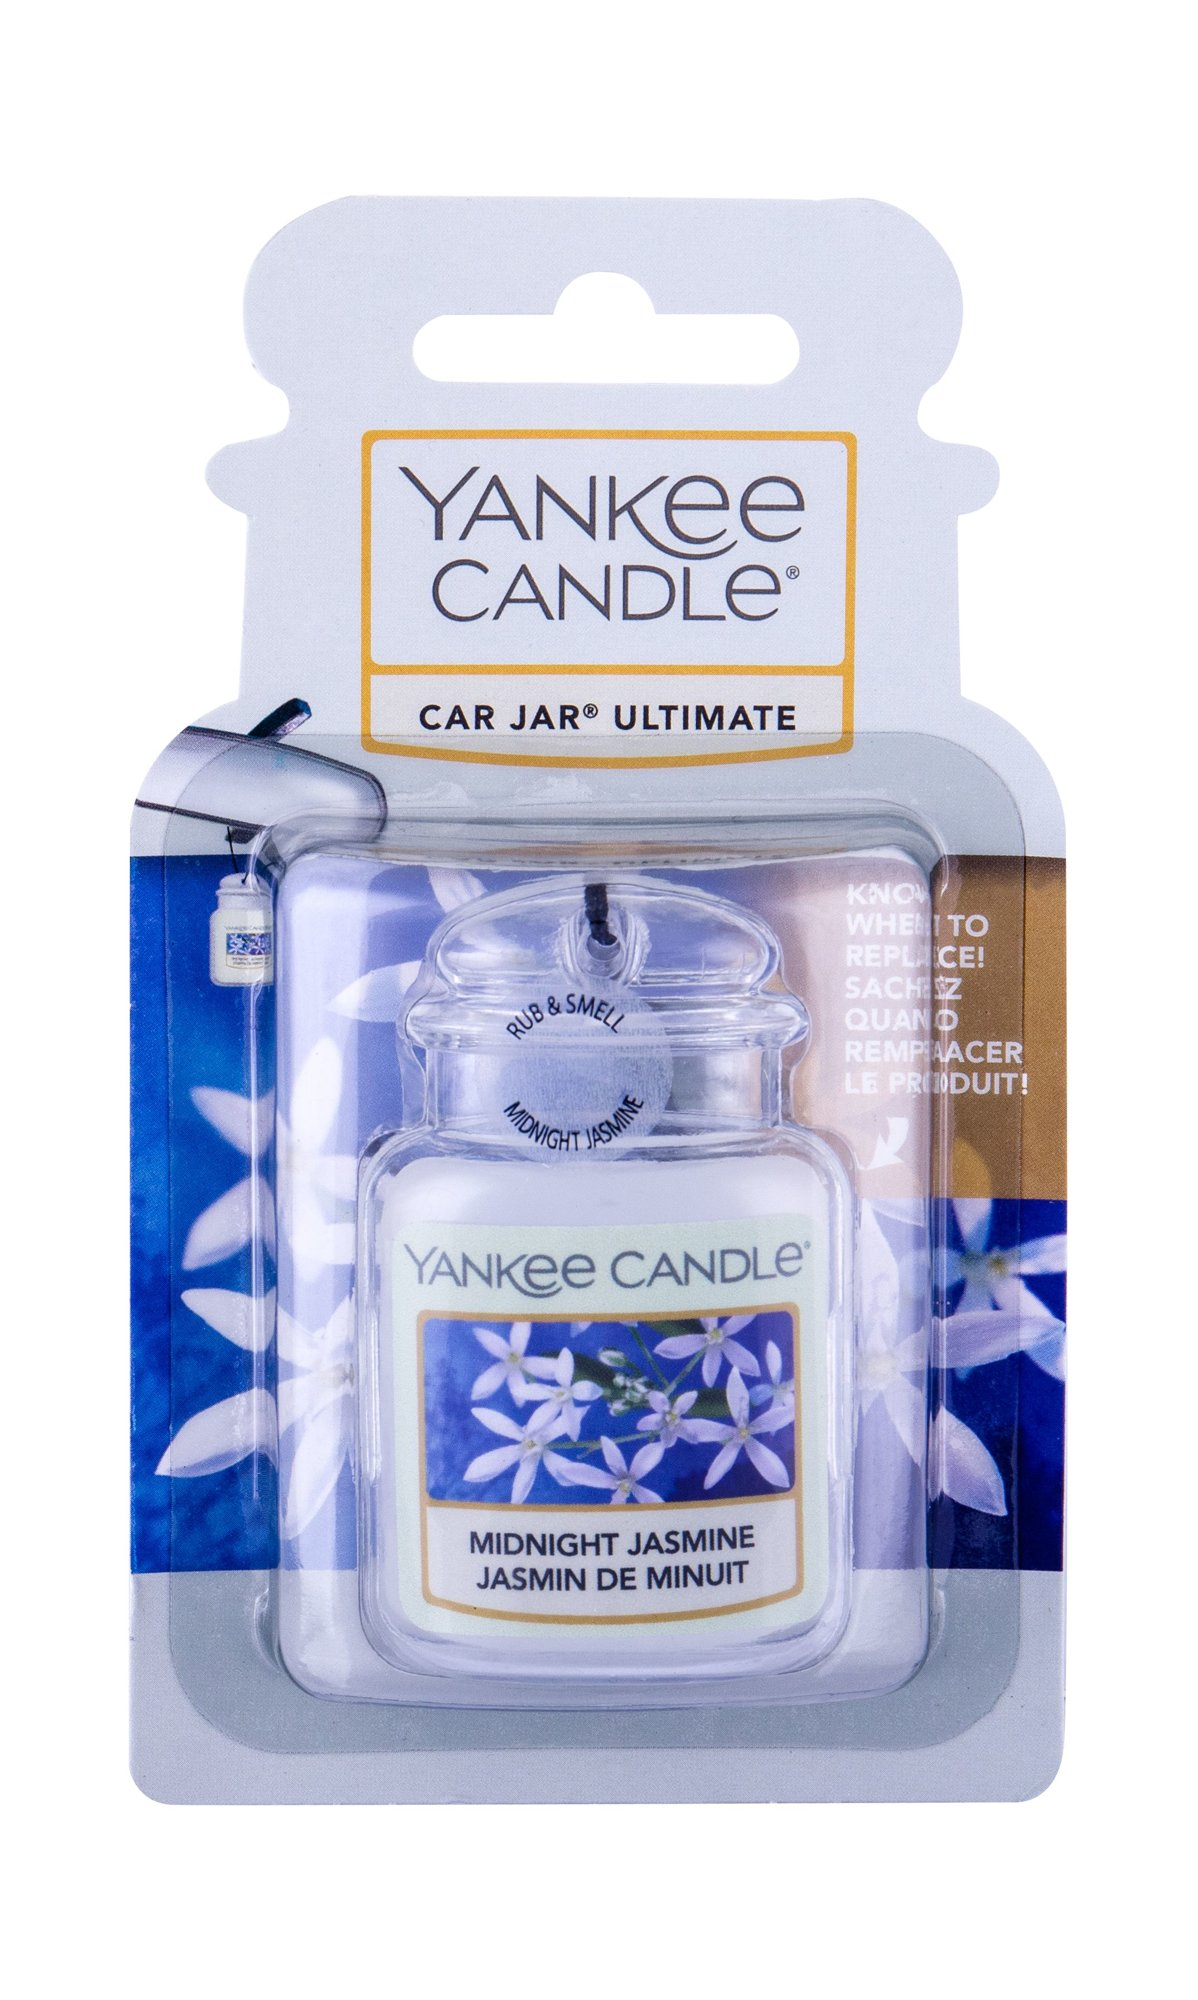 Yankee Candle Midnight Jasmine  Vůně do auta, U, 1 ks